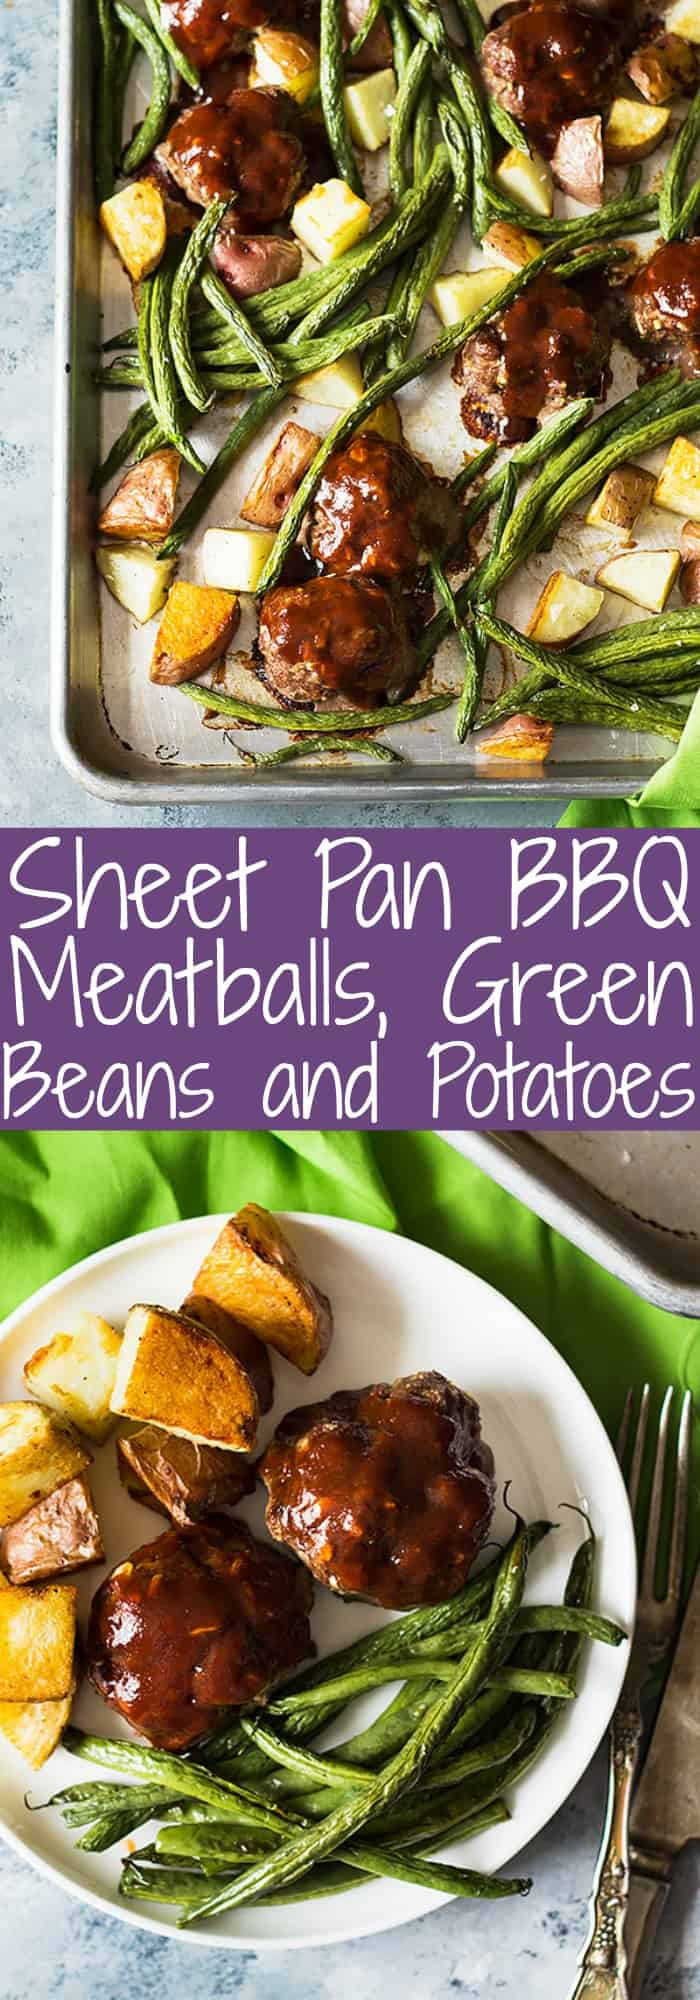 This Sheet Pan BBQ Meatballs Green Beans and Potatoes dinner is super easy, hearty and comforting!   www.countrysidecravings.com